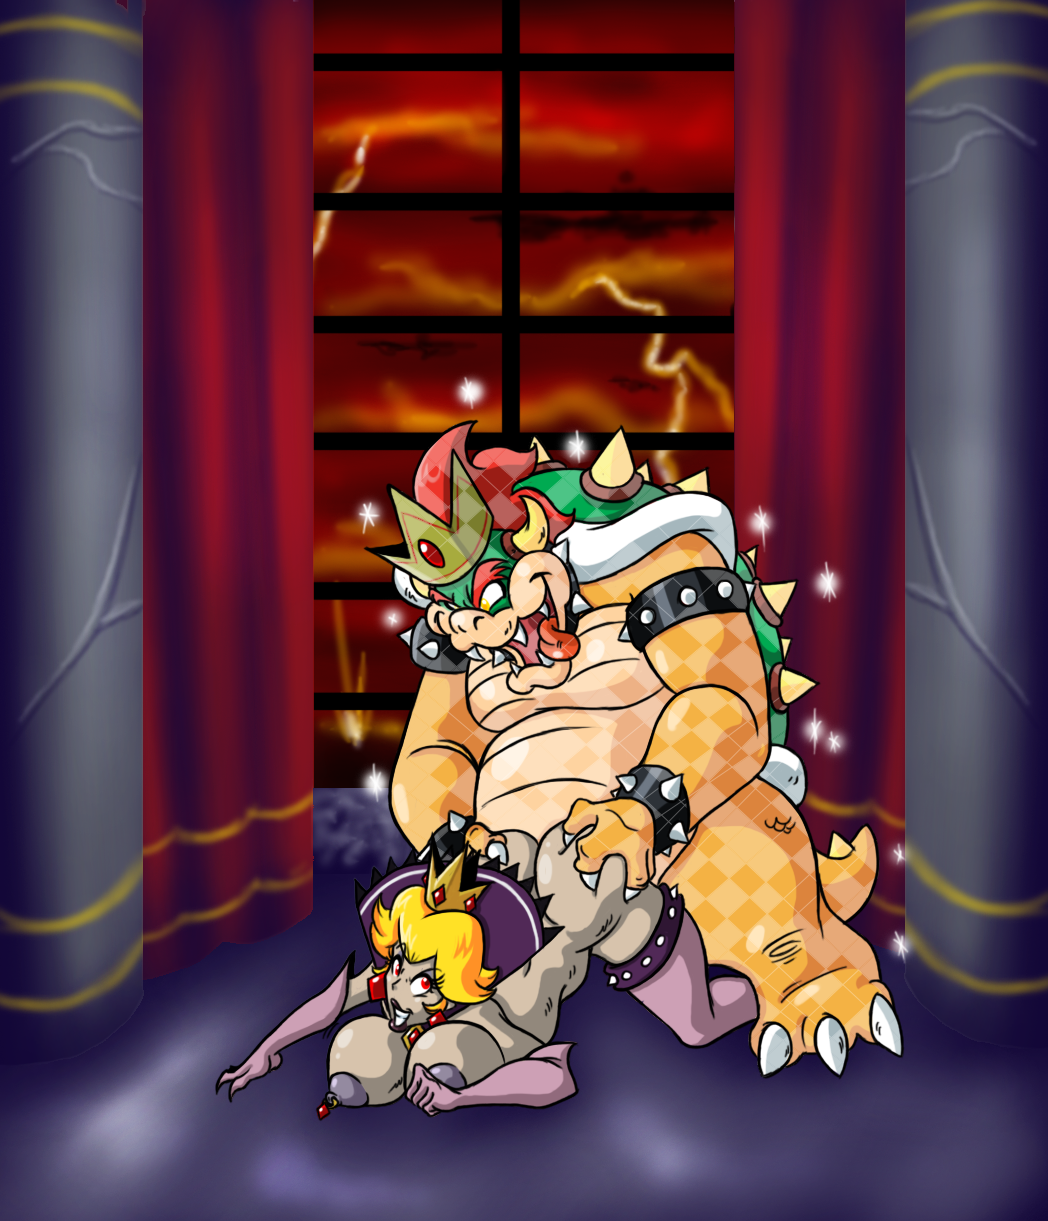 in peach and bed bowser Ball of junk delta rune